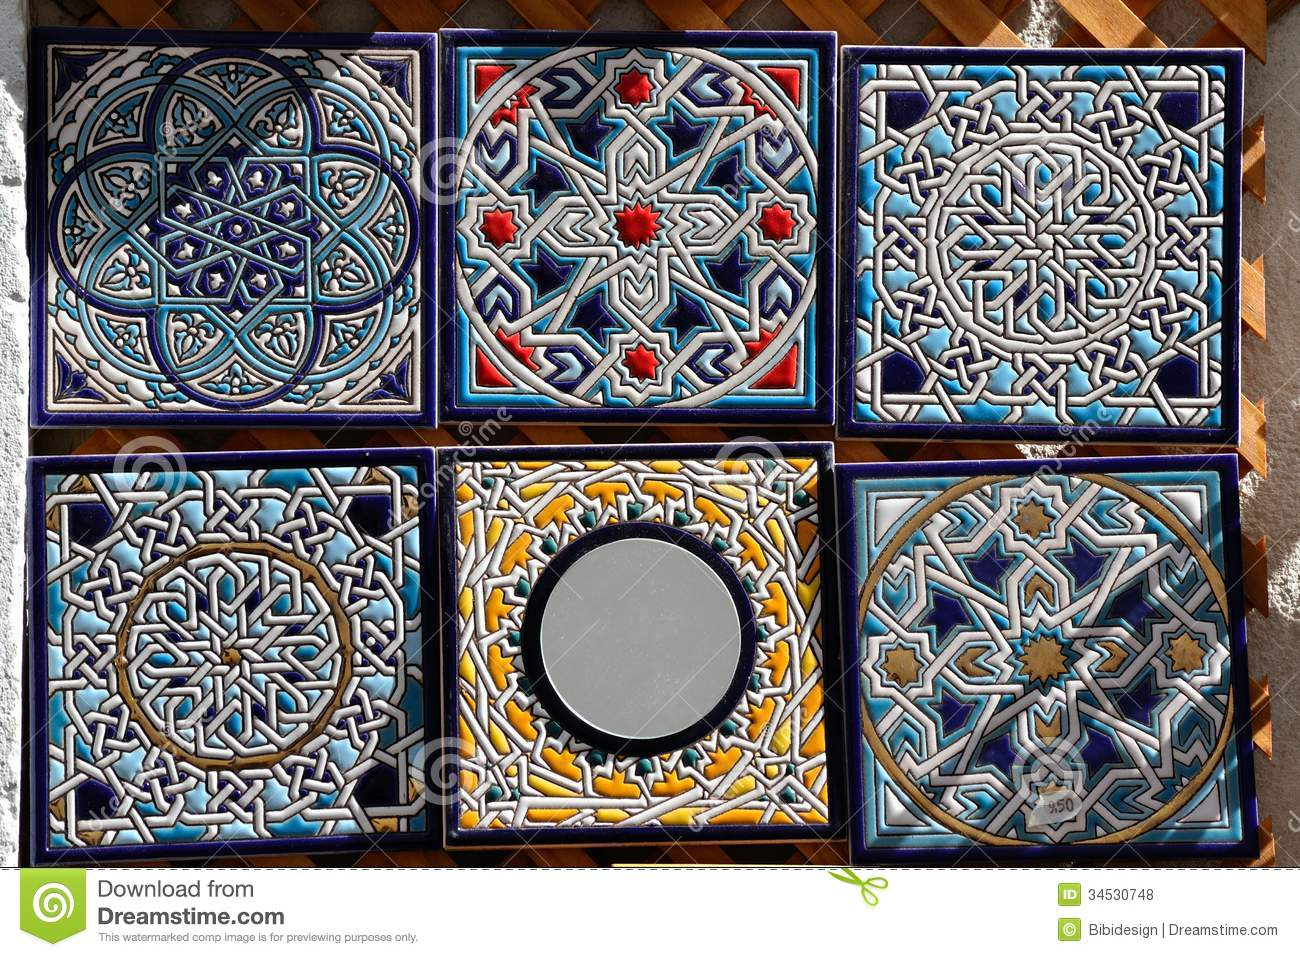 Decorative Hand Painted Ceramic Tiles For Sale. Stock Photo - Image ...